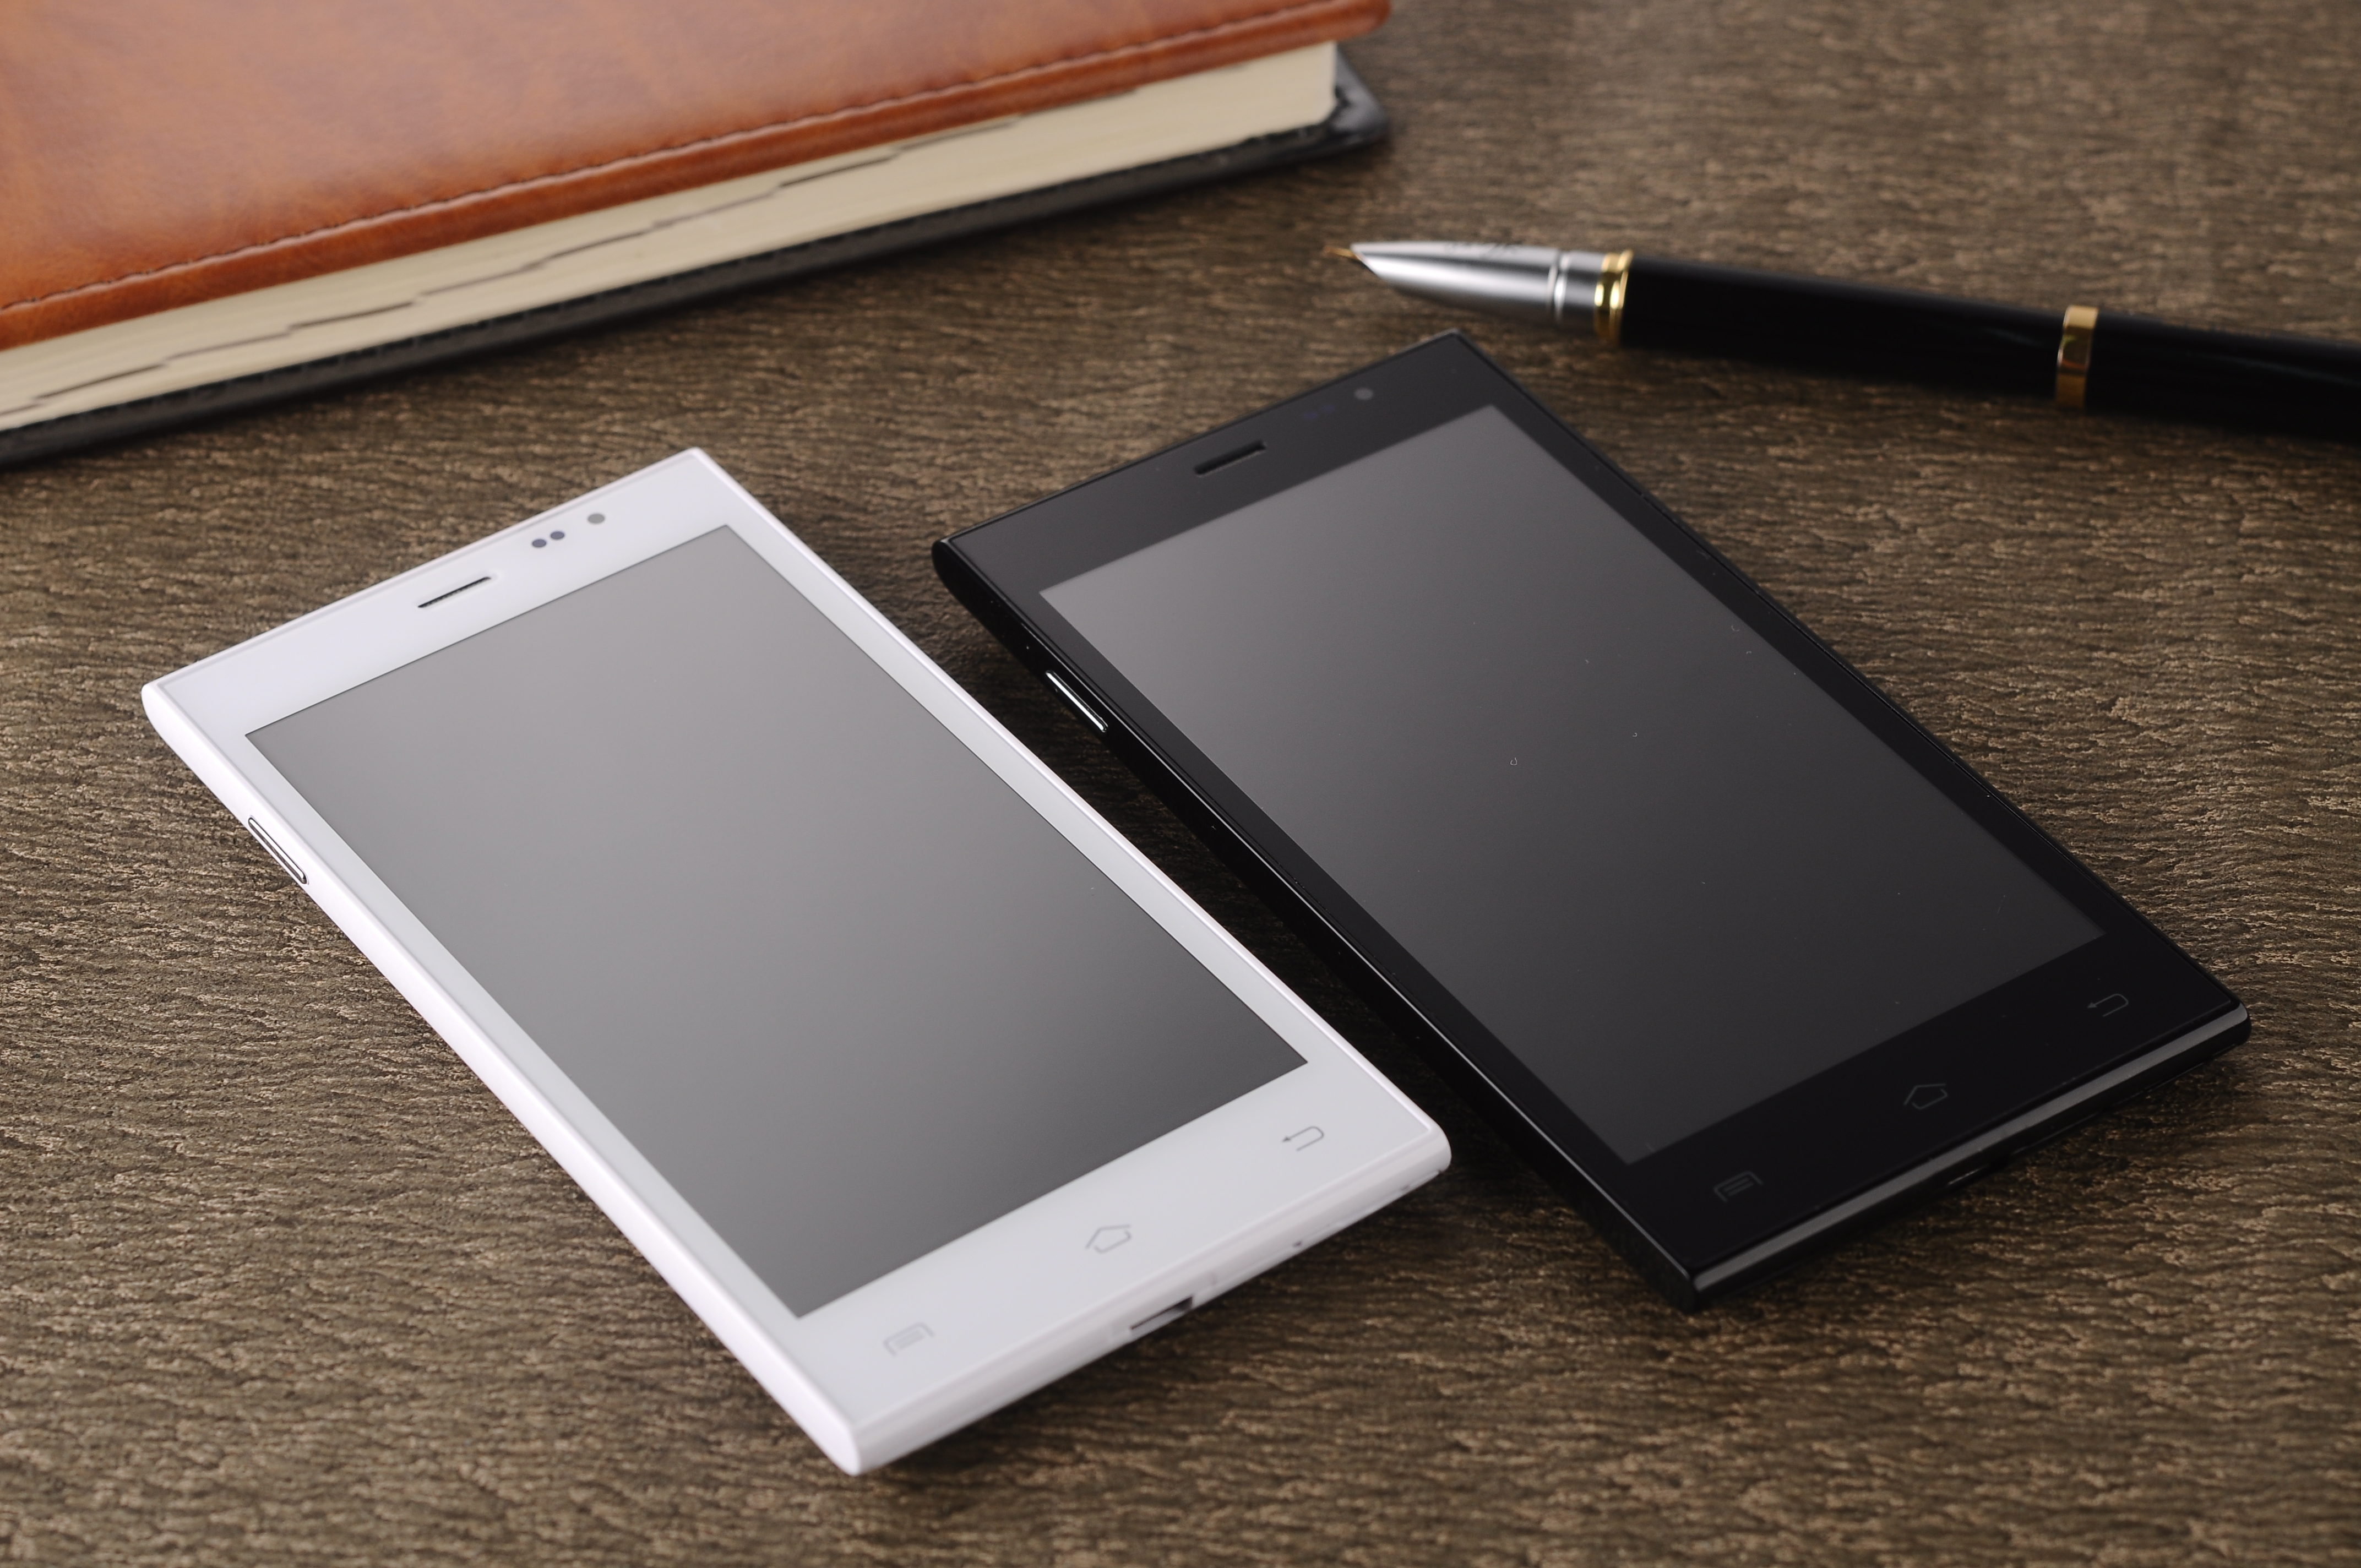 Mobile PhonesAndroid 4.2.2 3G Network 4GM+512M  CM-A13